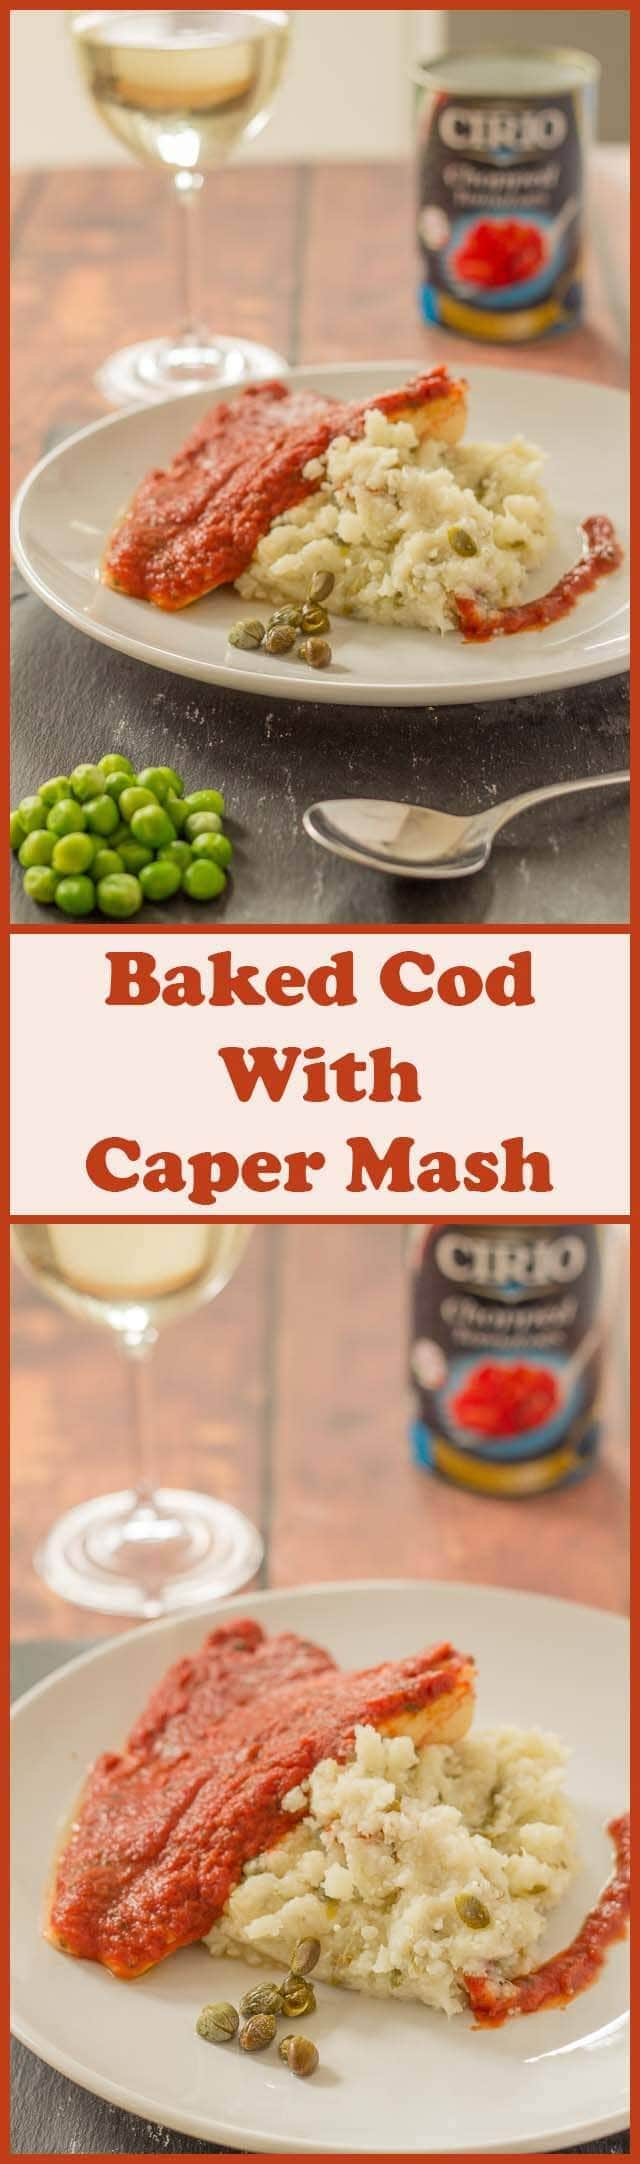 This baked cod with caper mash is a really tasty and easy quick healthy meal. A delicious tomato basil sauce covers the fish which is then baked in the oven and served with a healthy low carb caper mash.